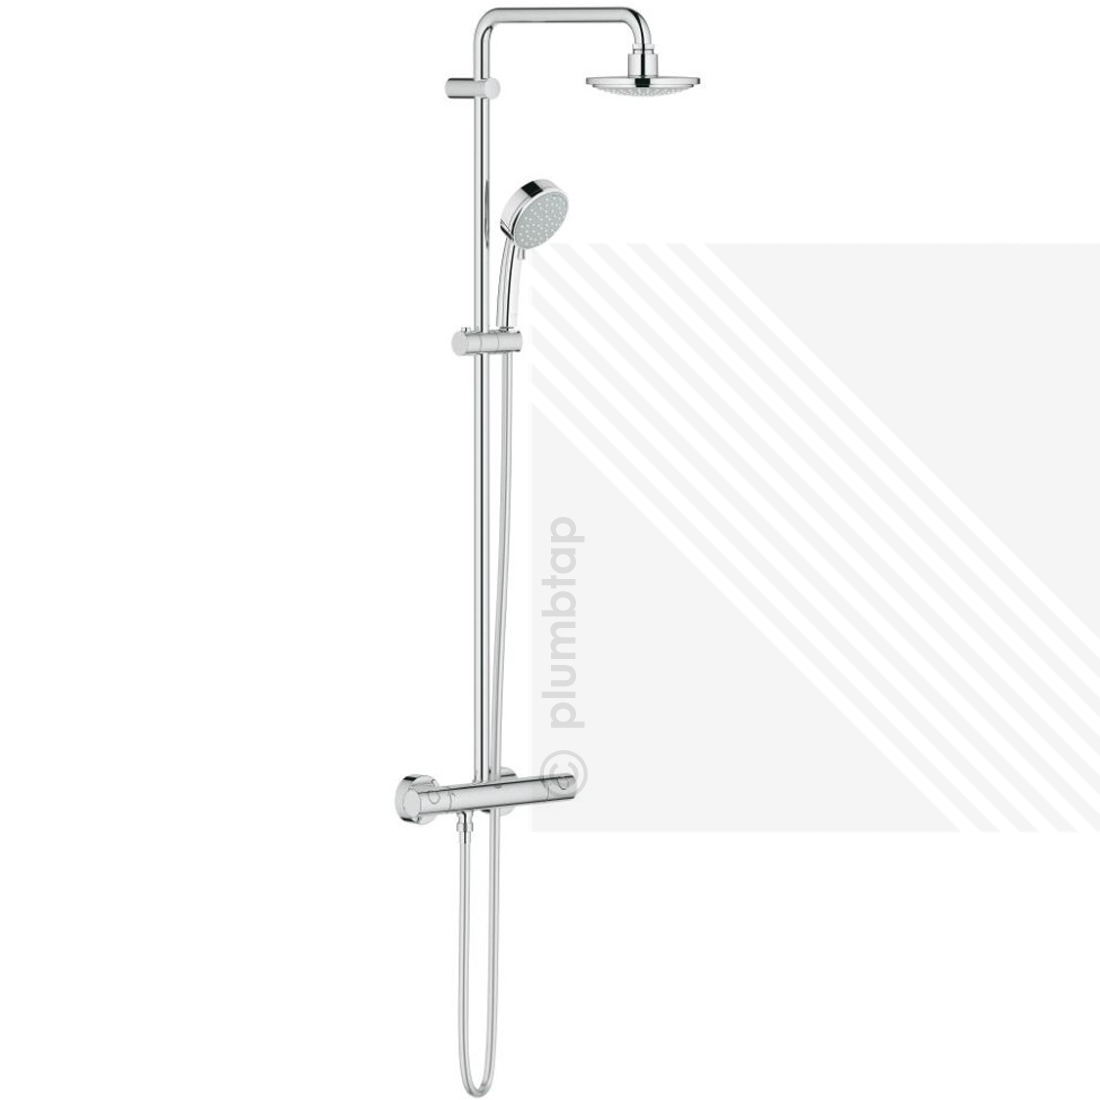 Grohe 26302000 New Tempesta Cosmopolitan Exposed Thermostatic Valve ...